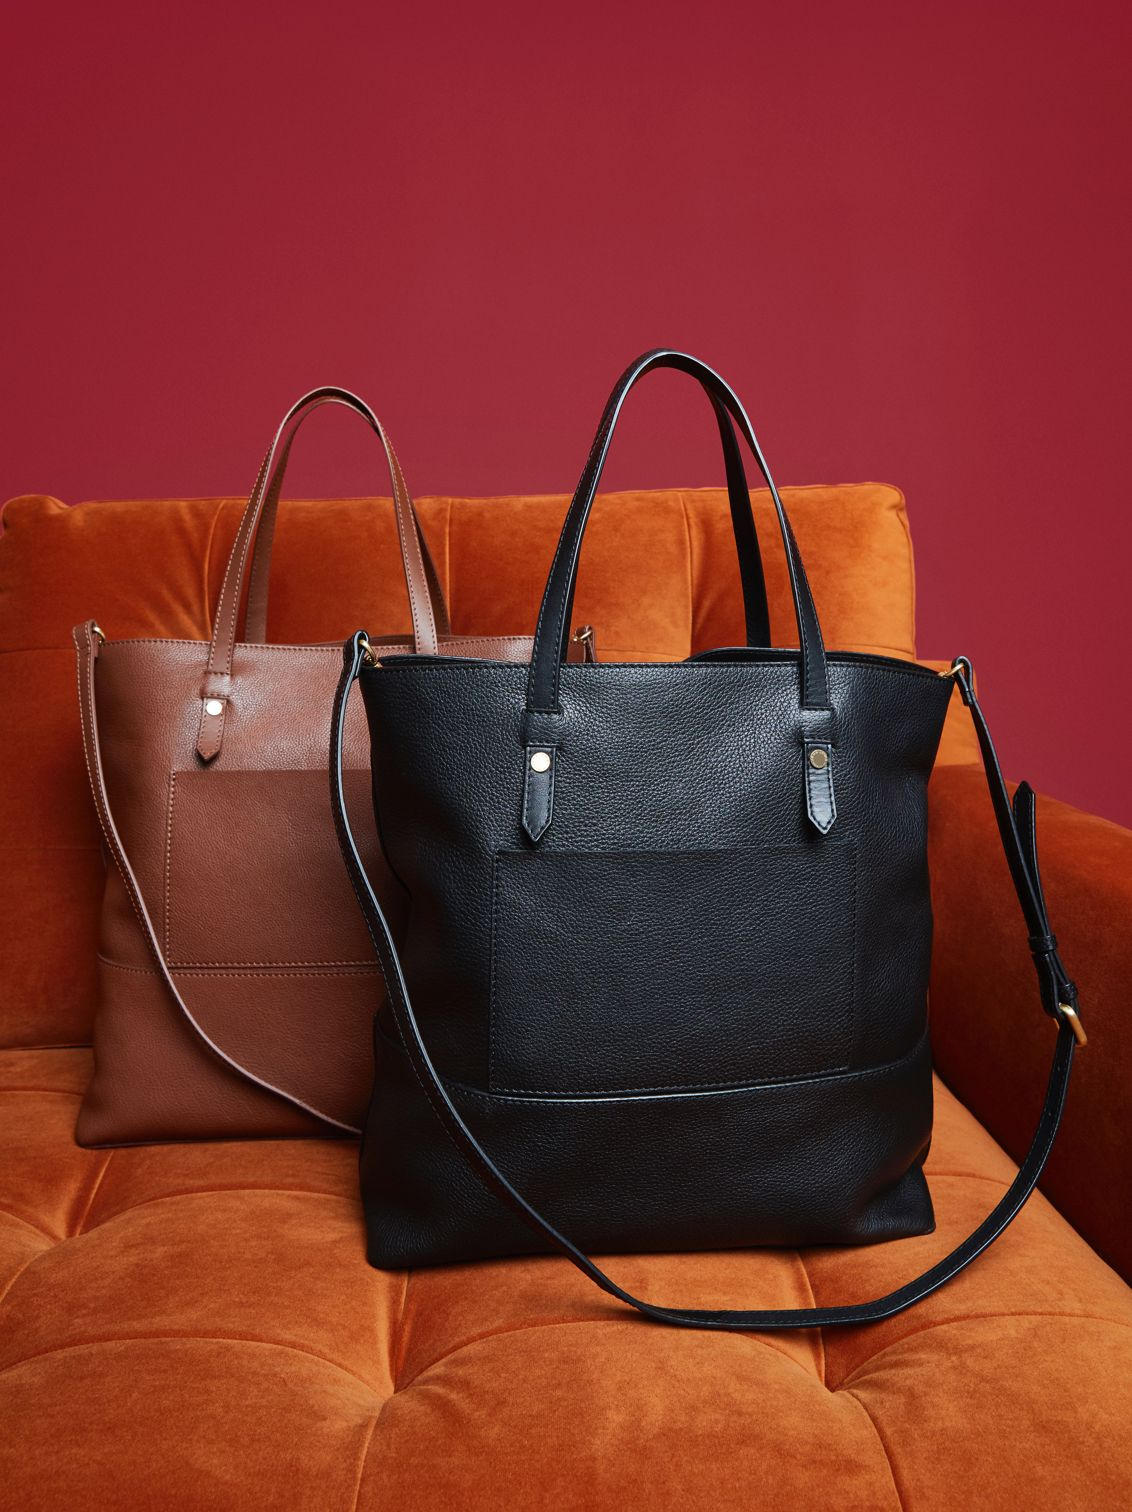 The Smart Set Tote